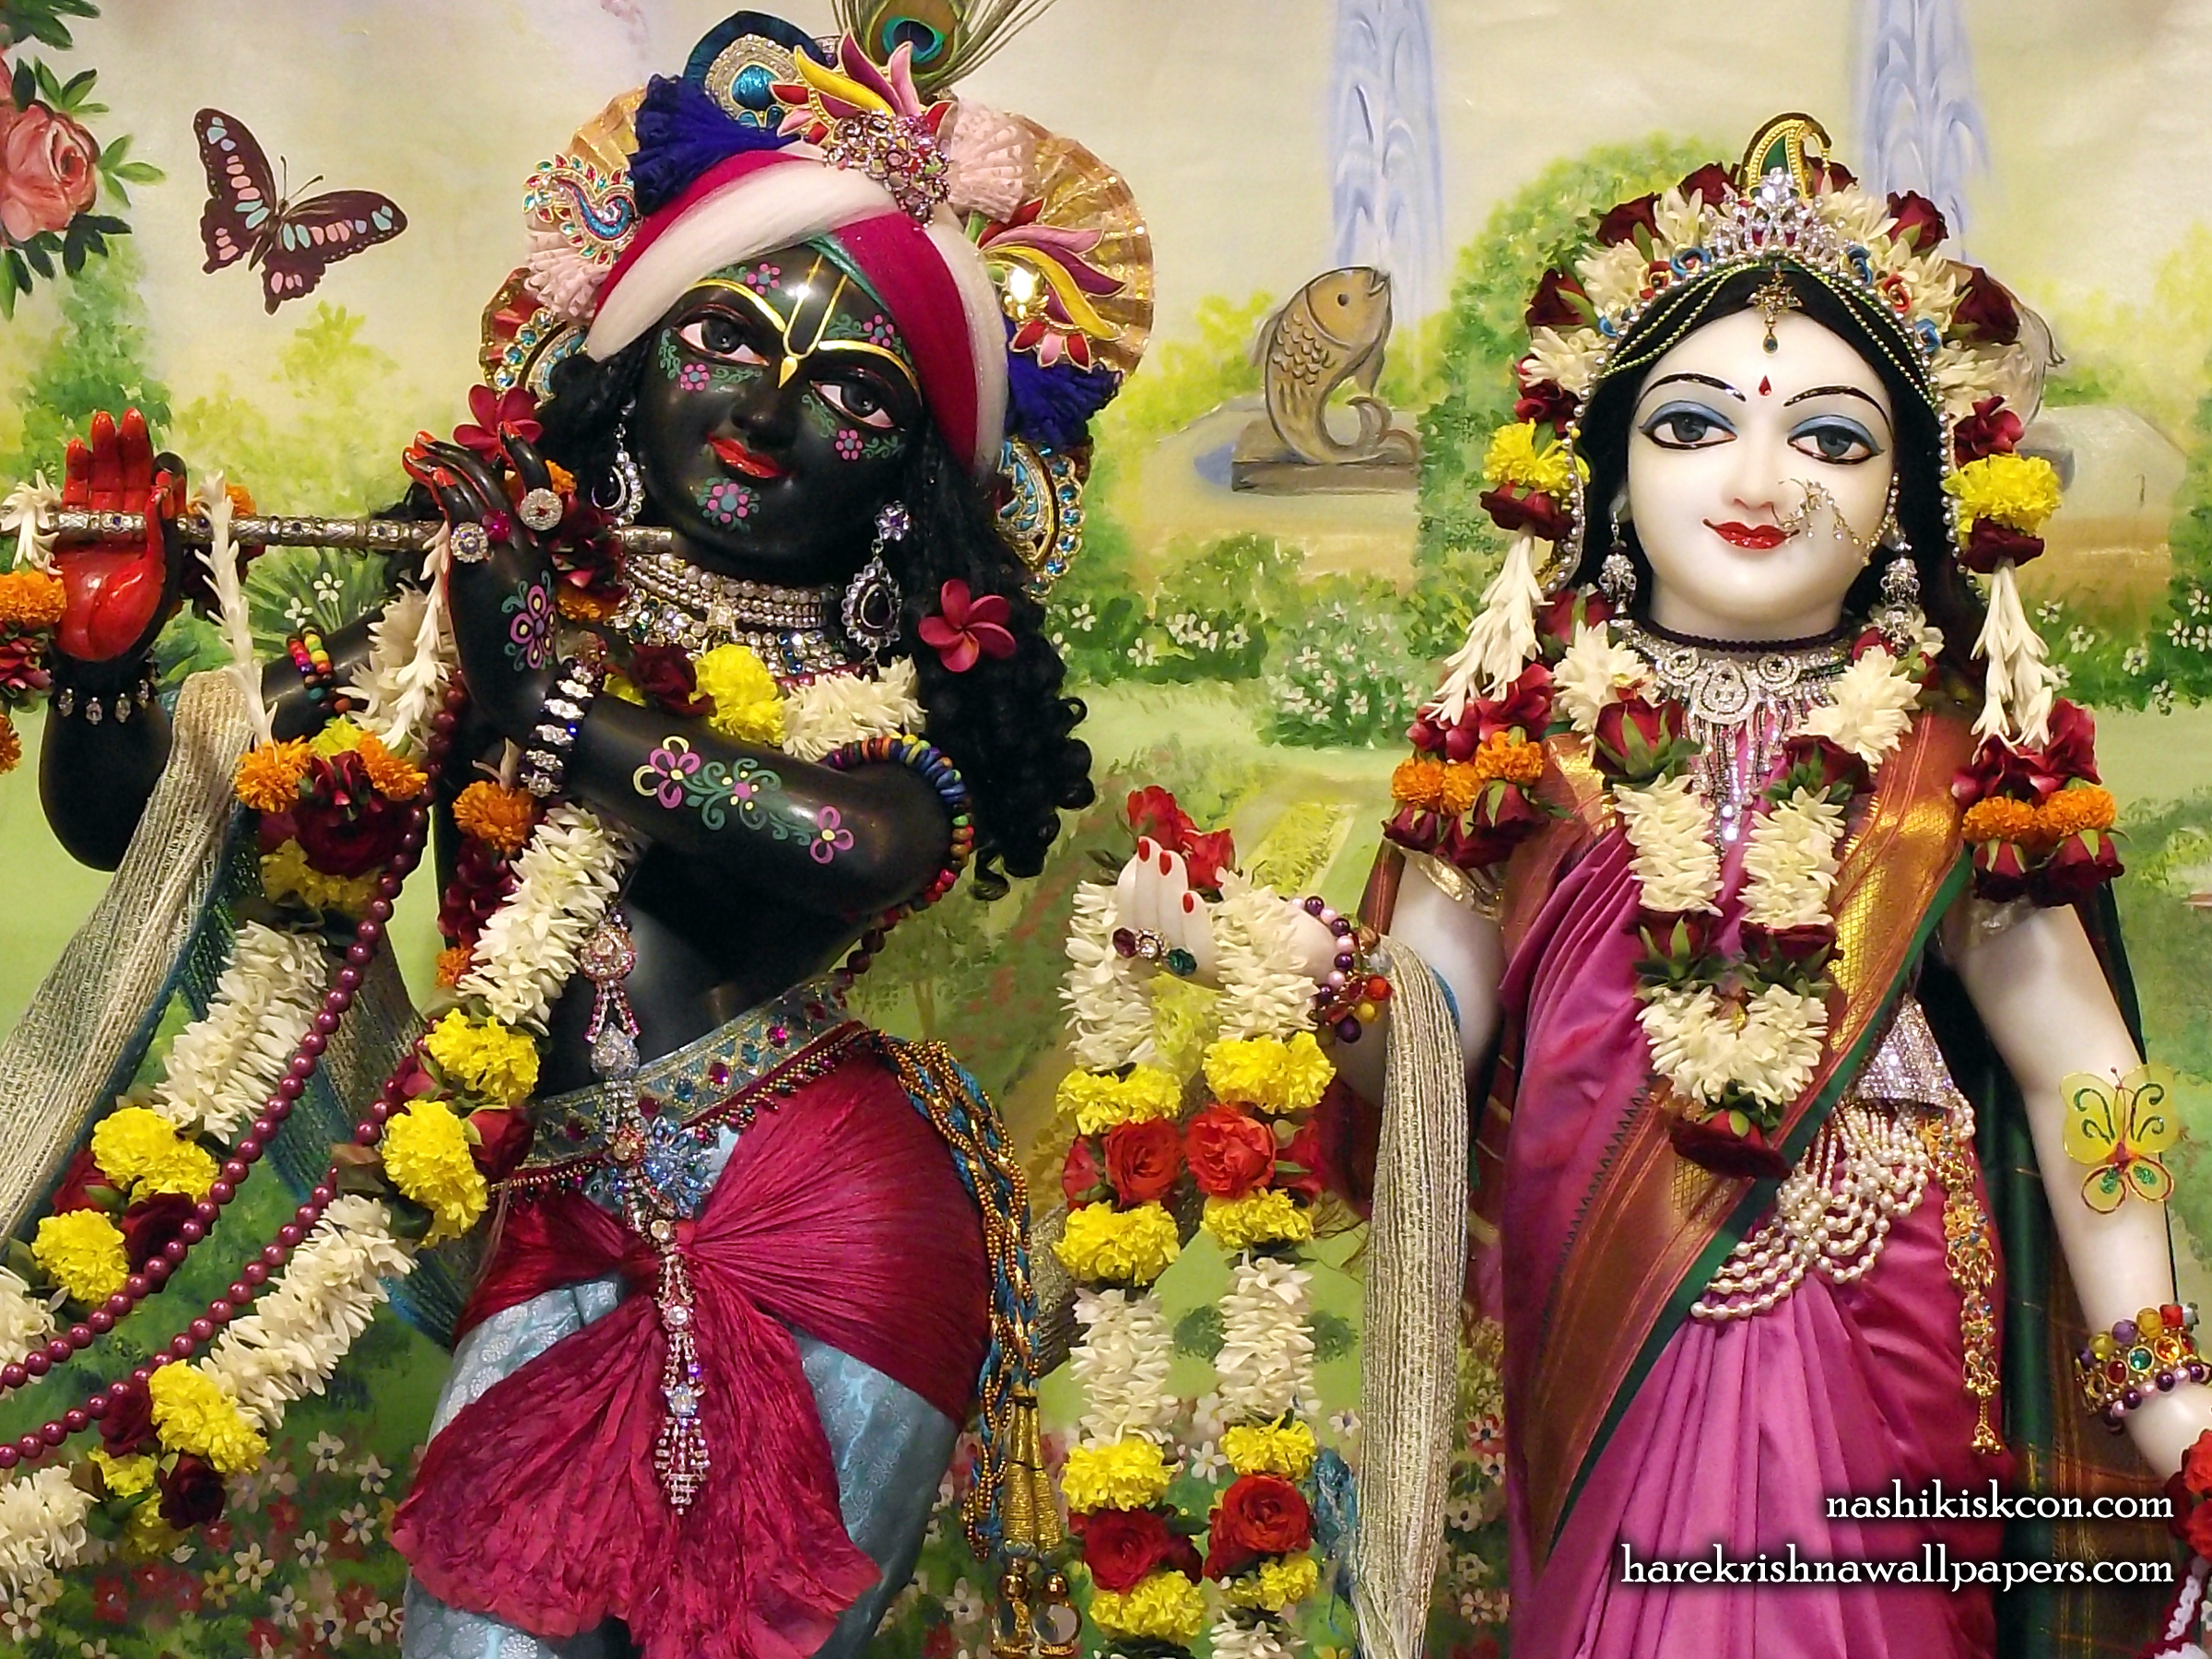 Sri Sri Radha Madan Gopal Close up Wallpaper (009) Size 2400x1800 Download